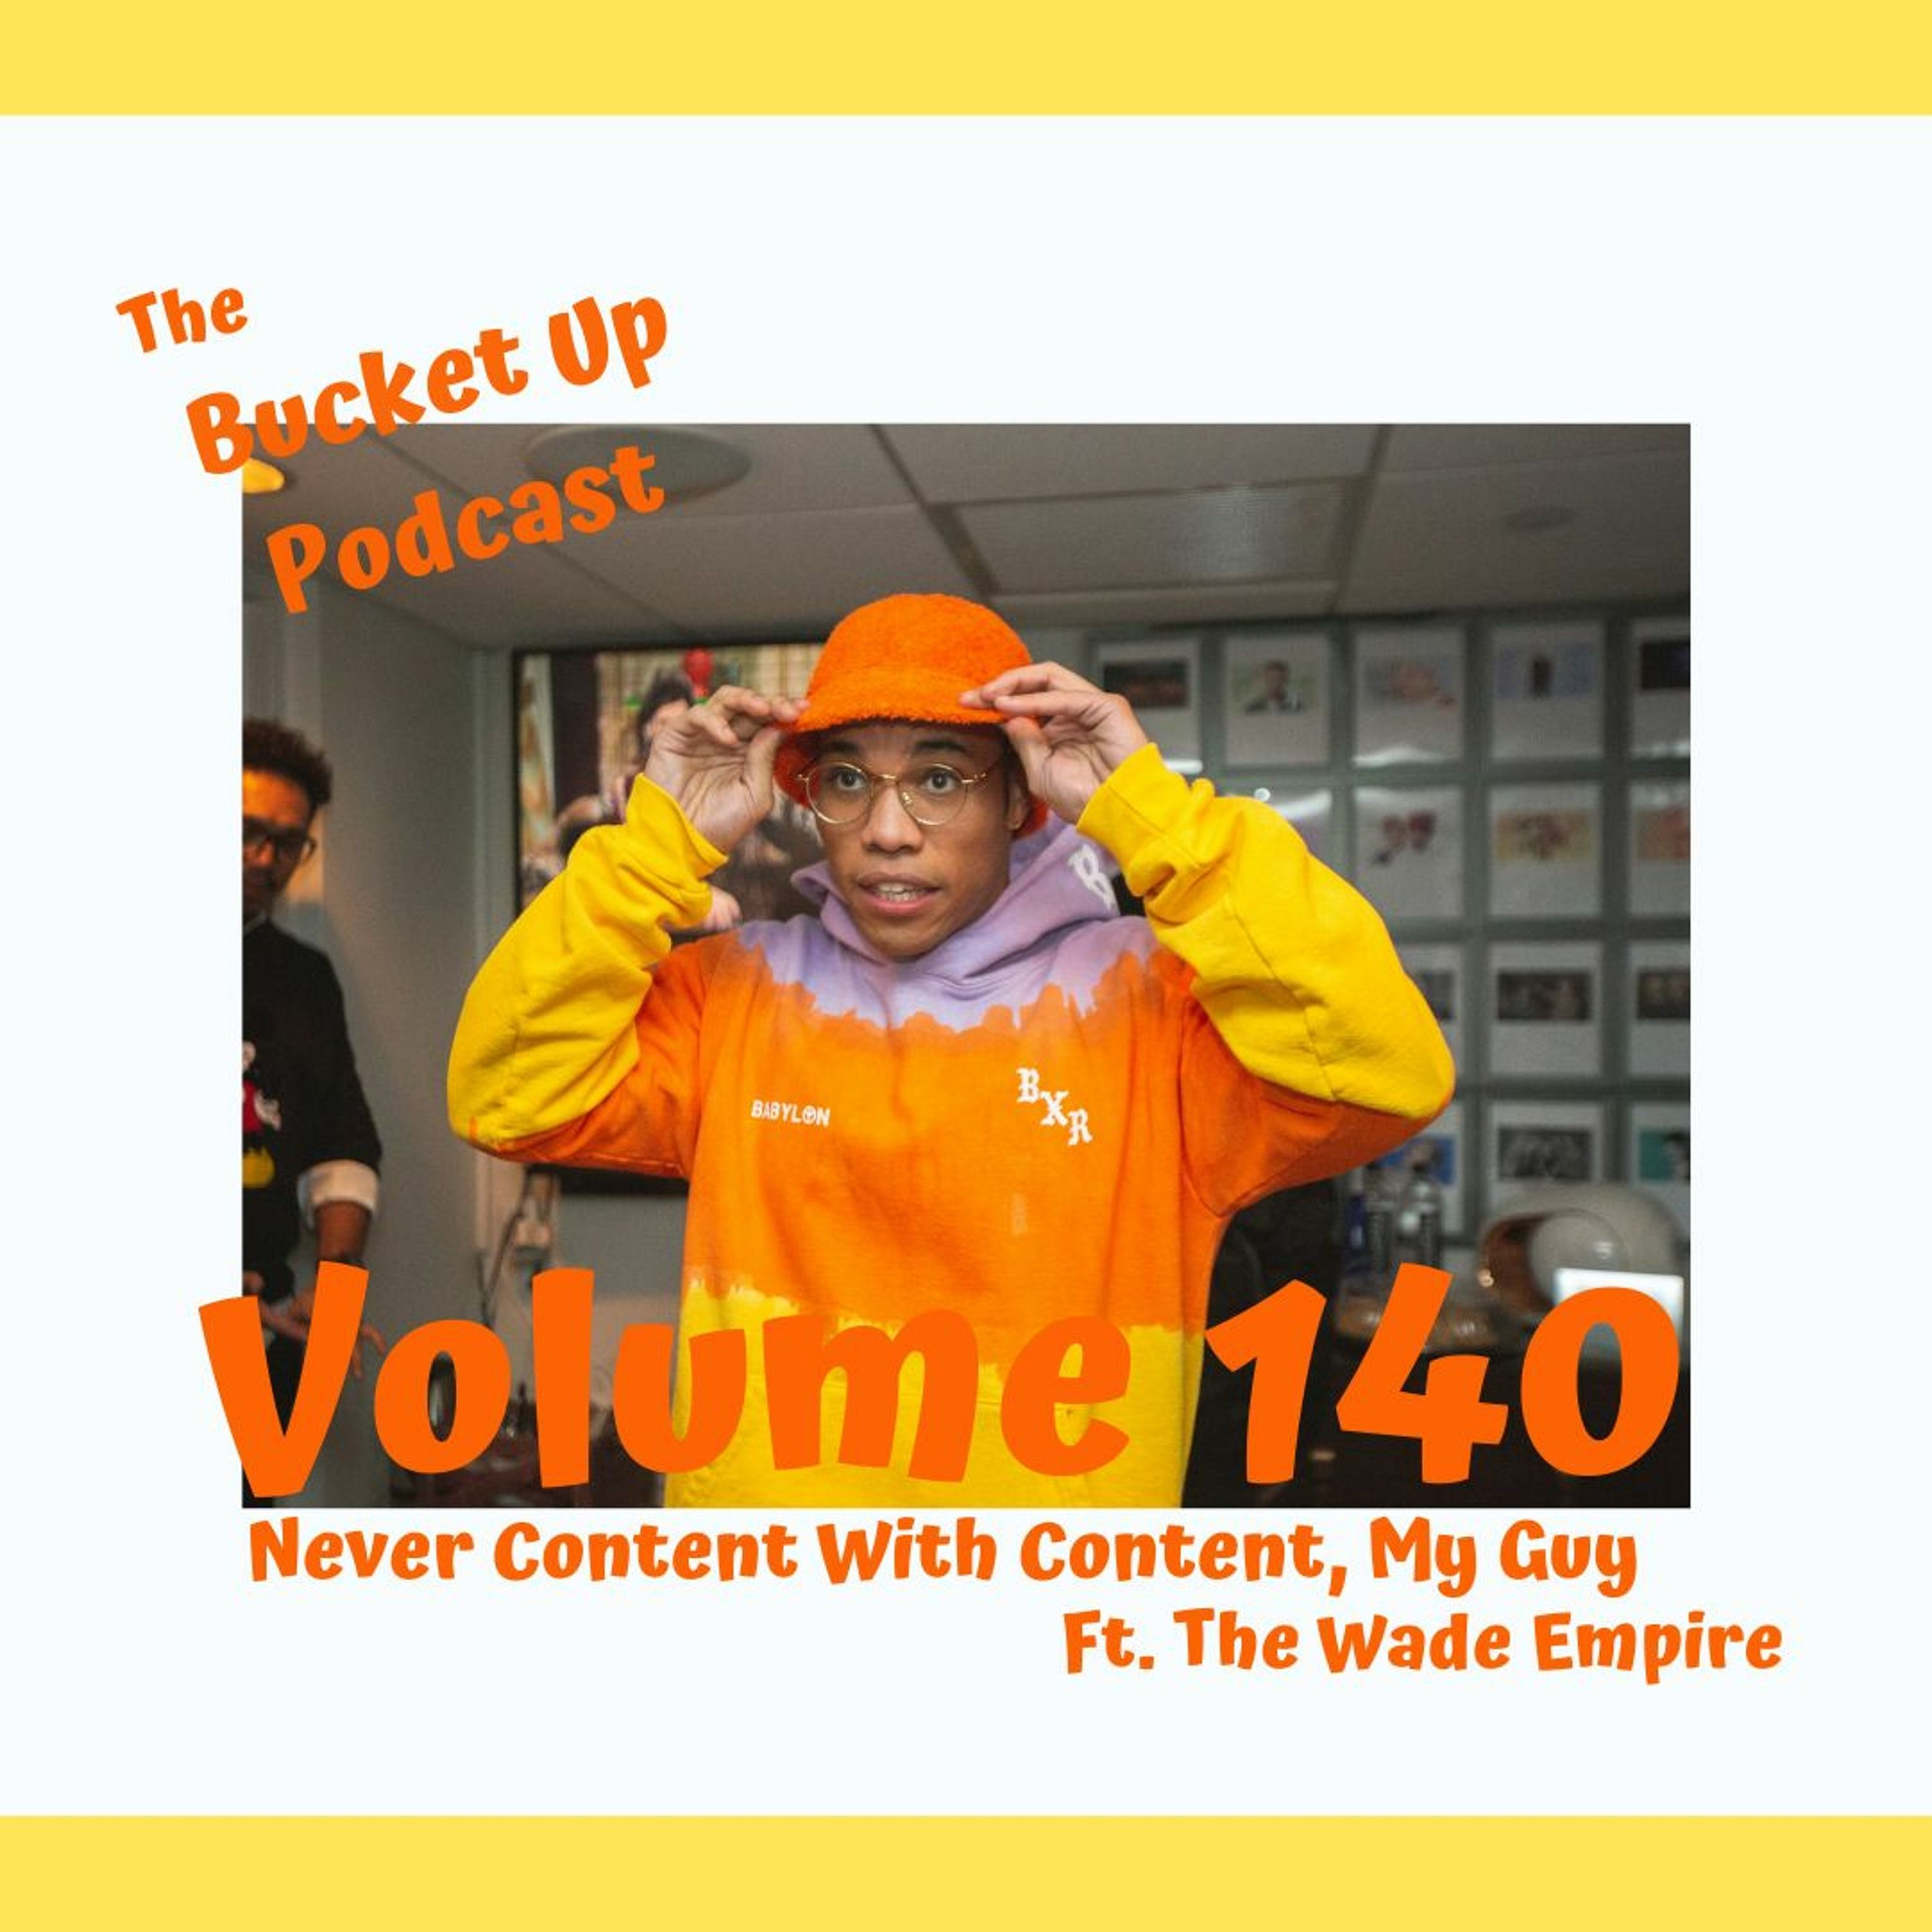 Volume 140: Never Content With Content, My Guy